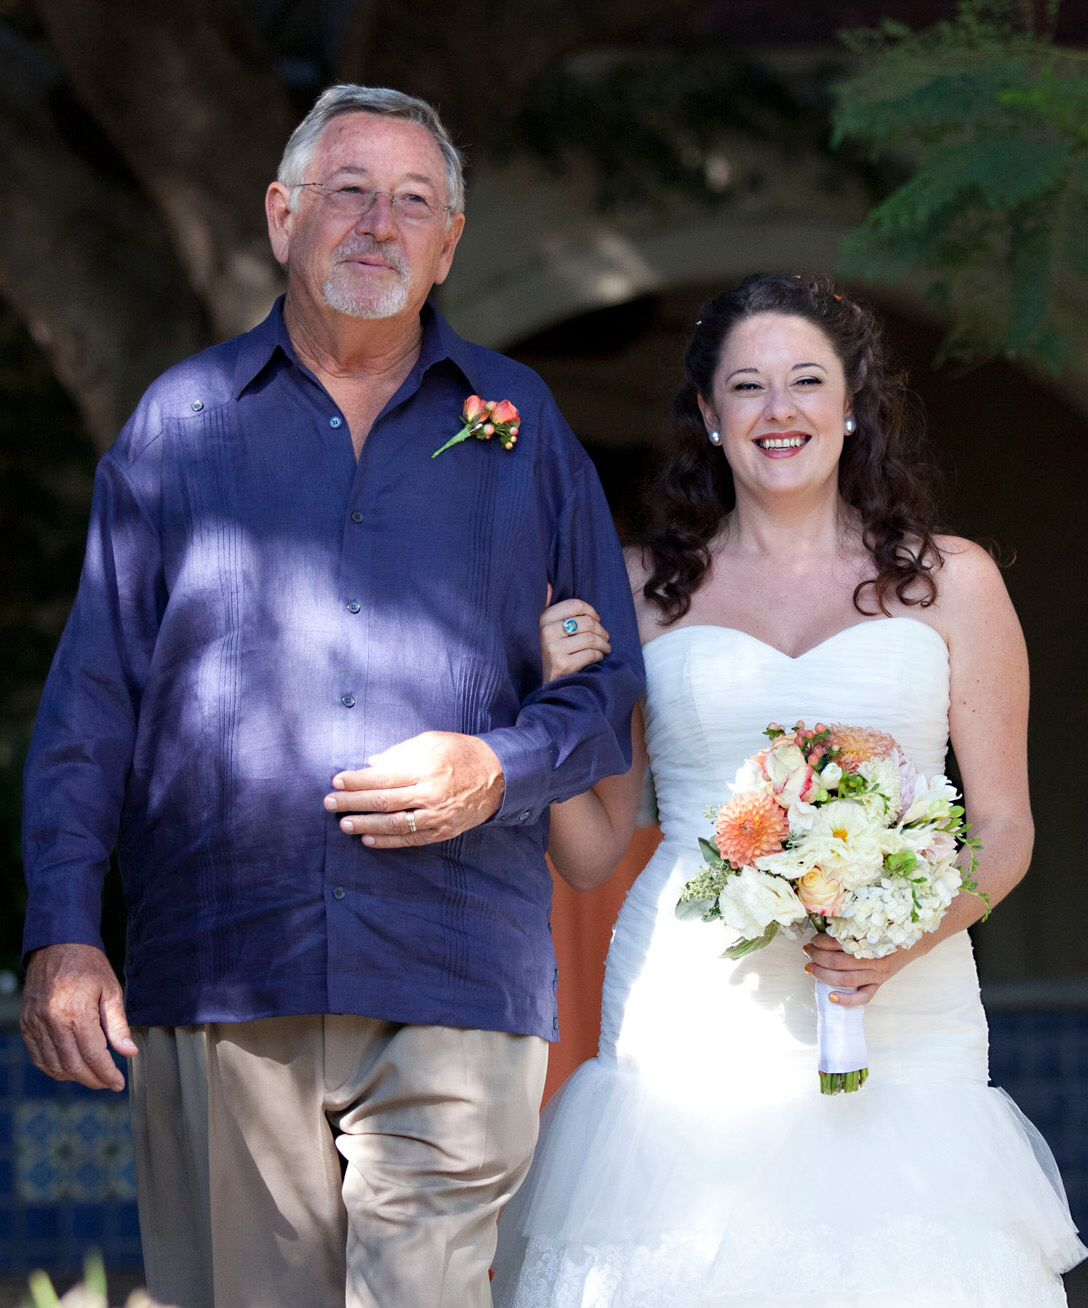 Casual Wedding Attire For Father Of The Bride Diffe Color Shirt And Pants But A